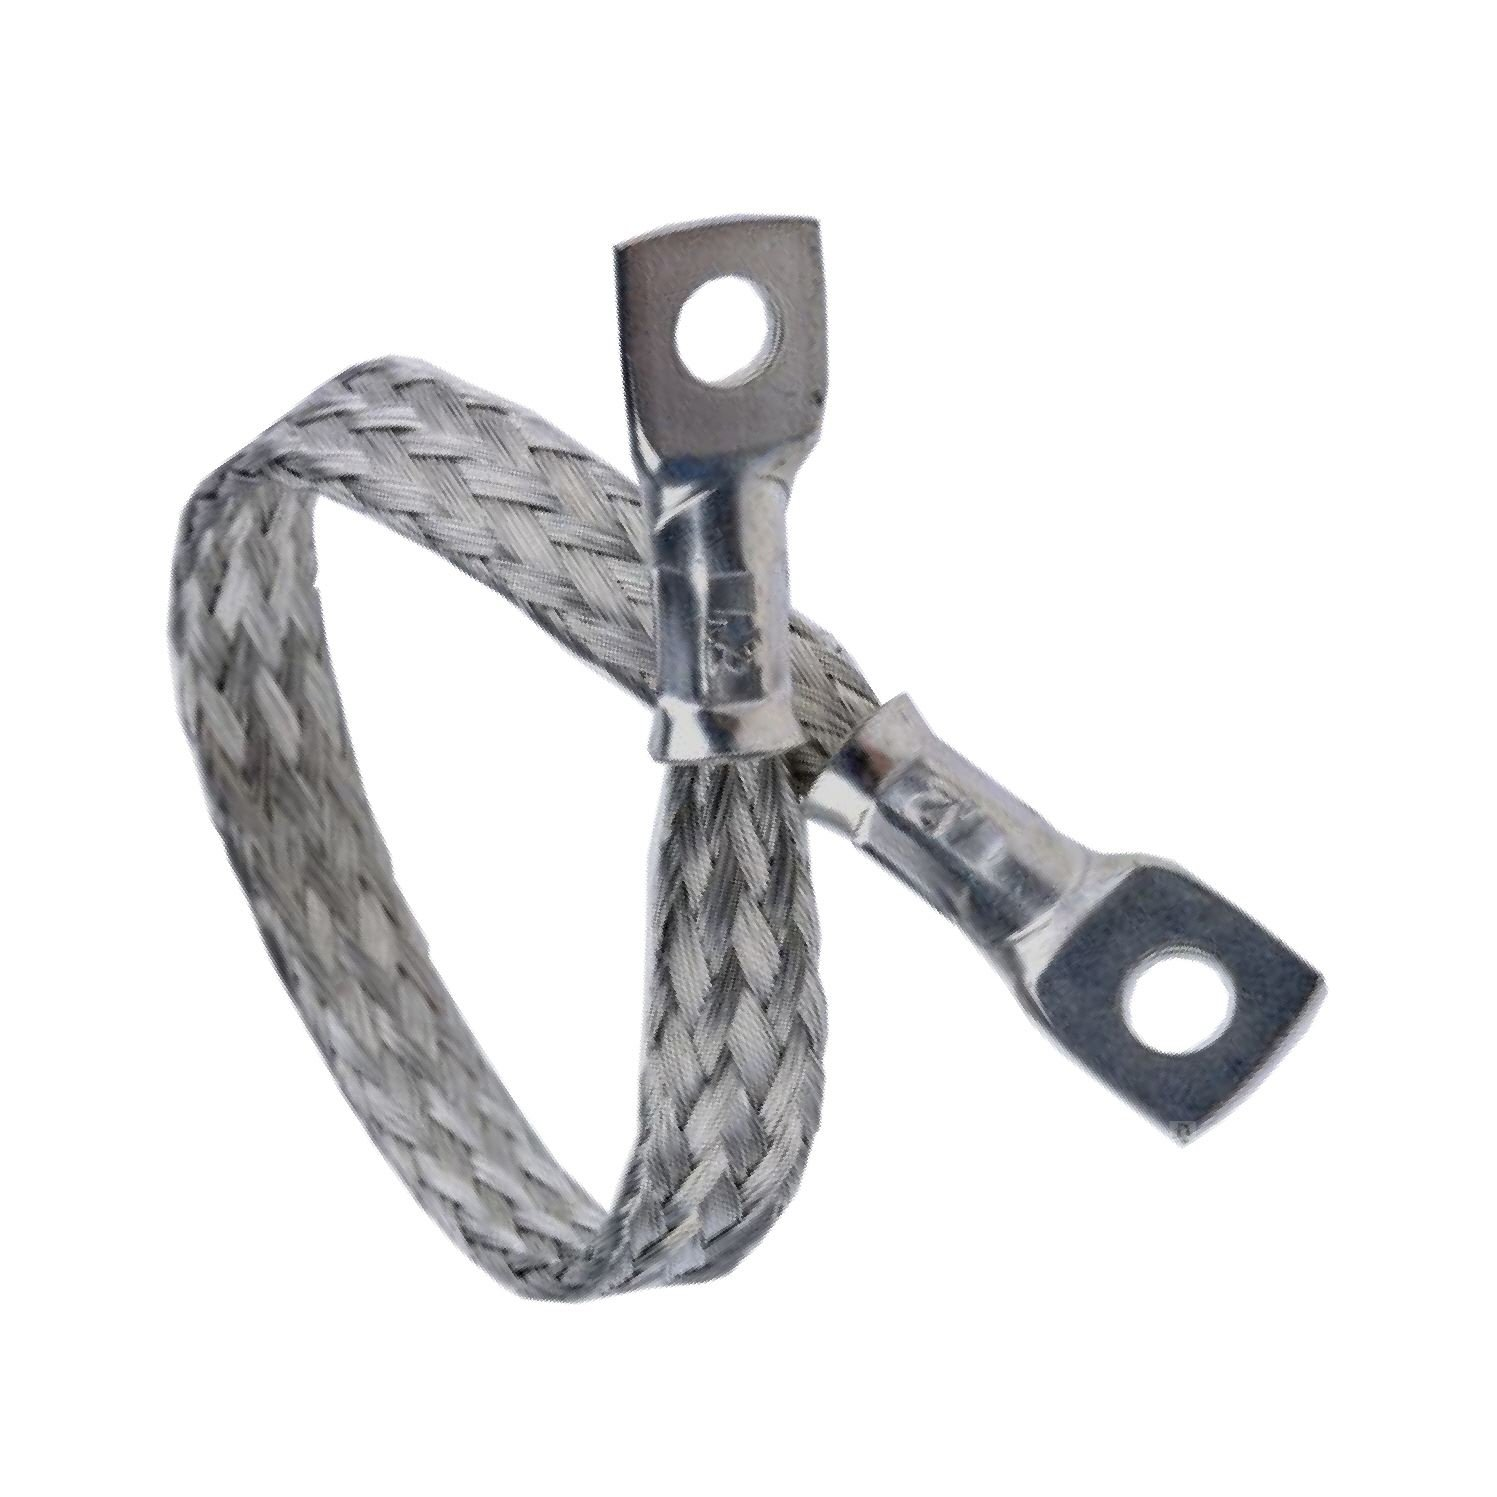 Earth Straps Round Copper Braid (L)200mm (Dia)M6 Current Rating 45A